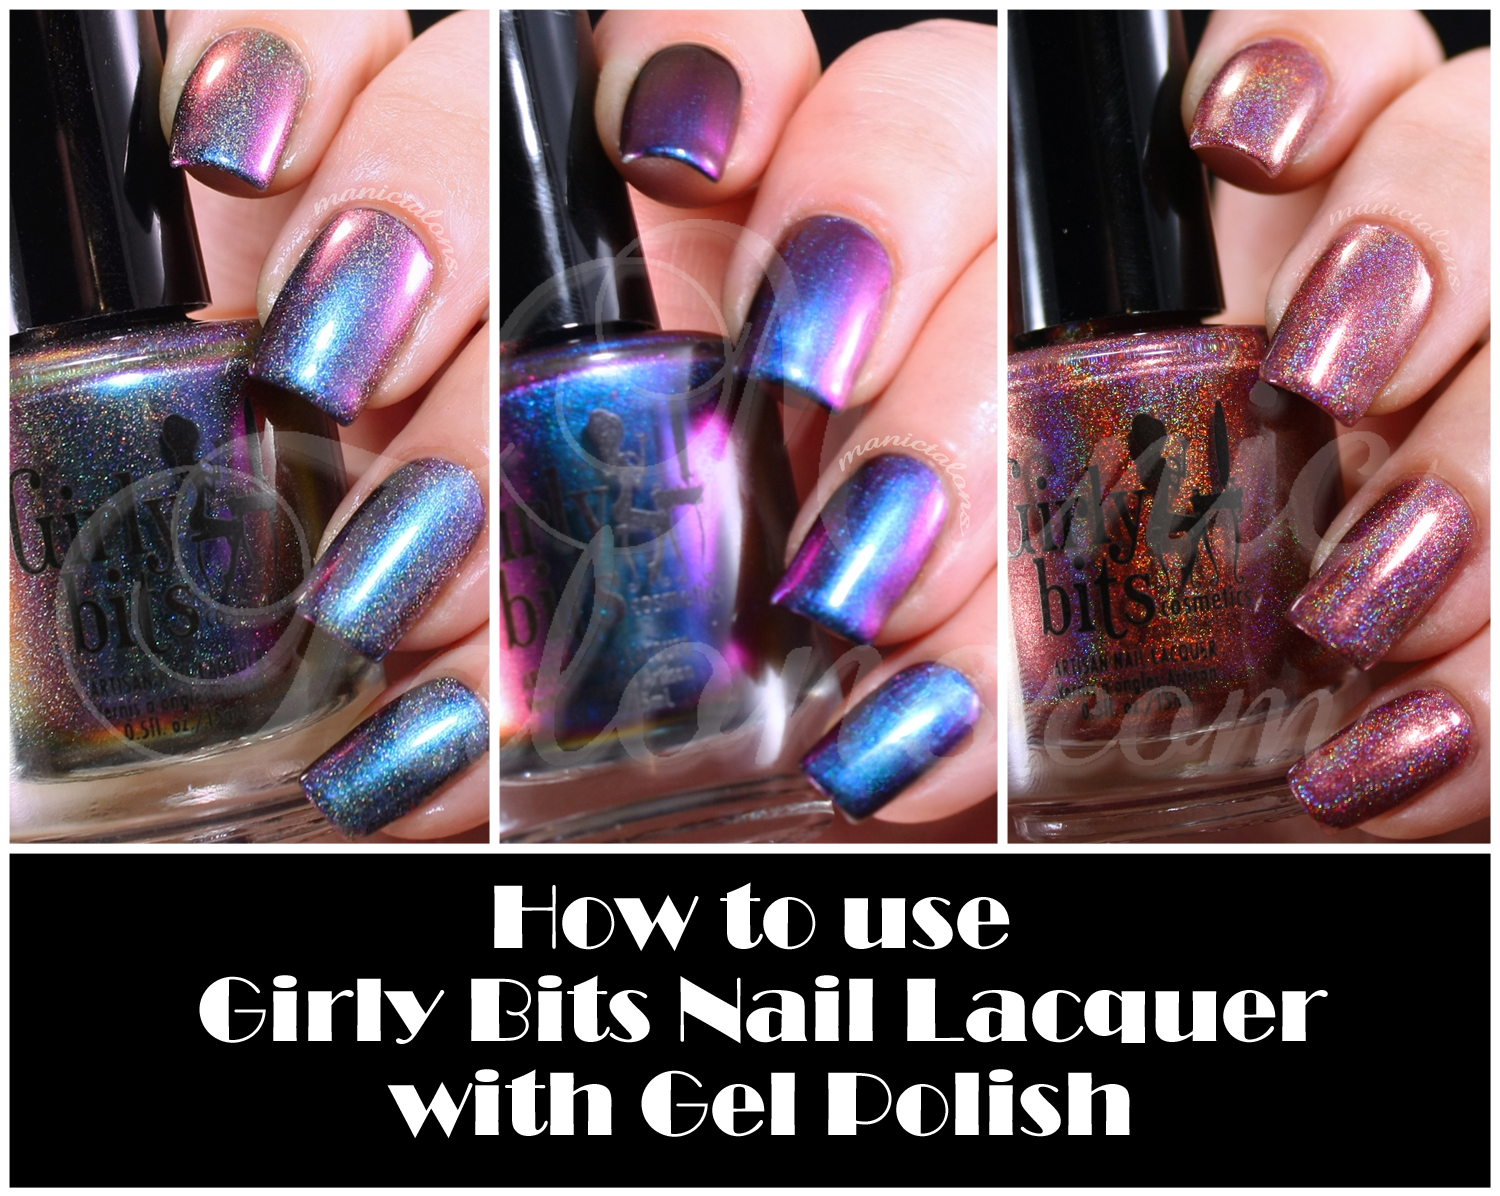 Manic Talons Nail Design: A Perfect Pair: Girly Bits Nail Lacquer ...